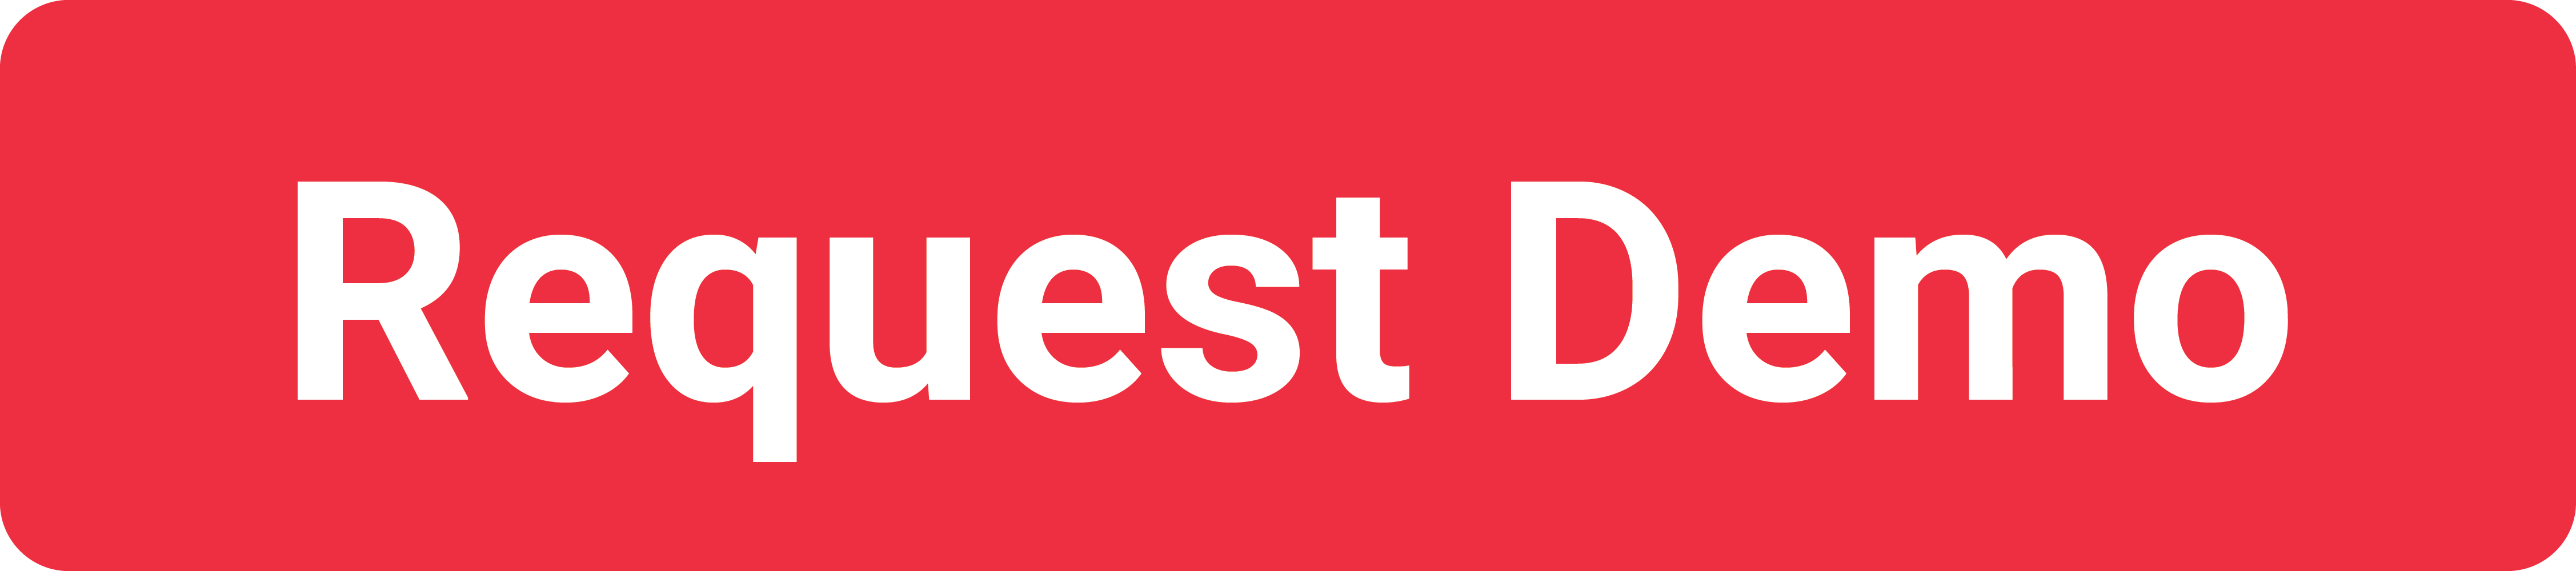 Request Demo Red